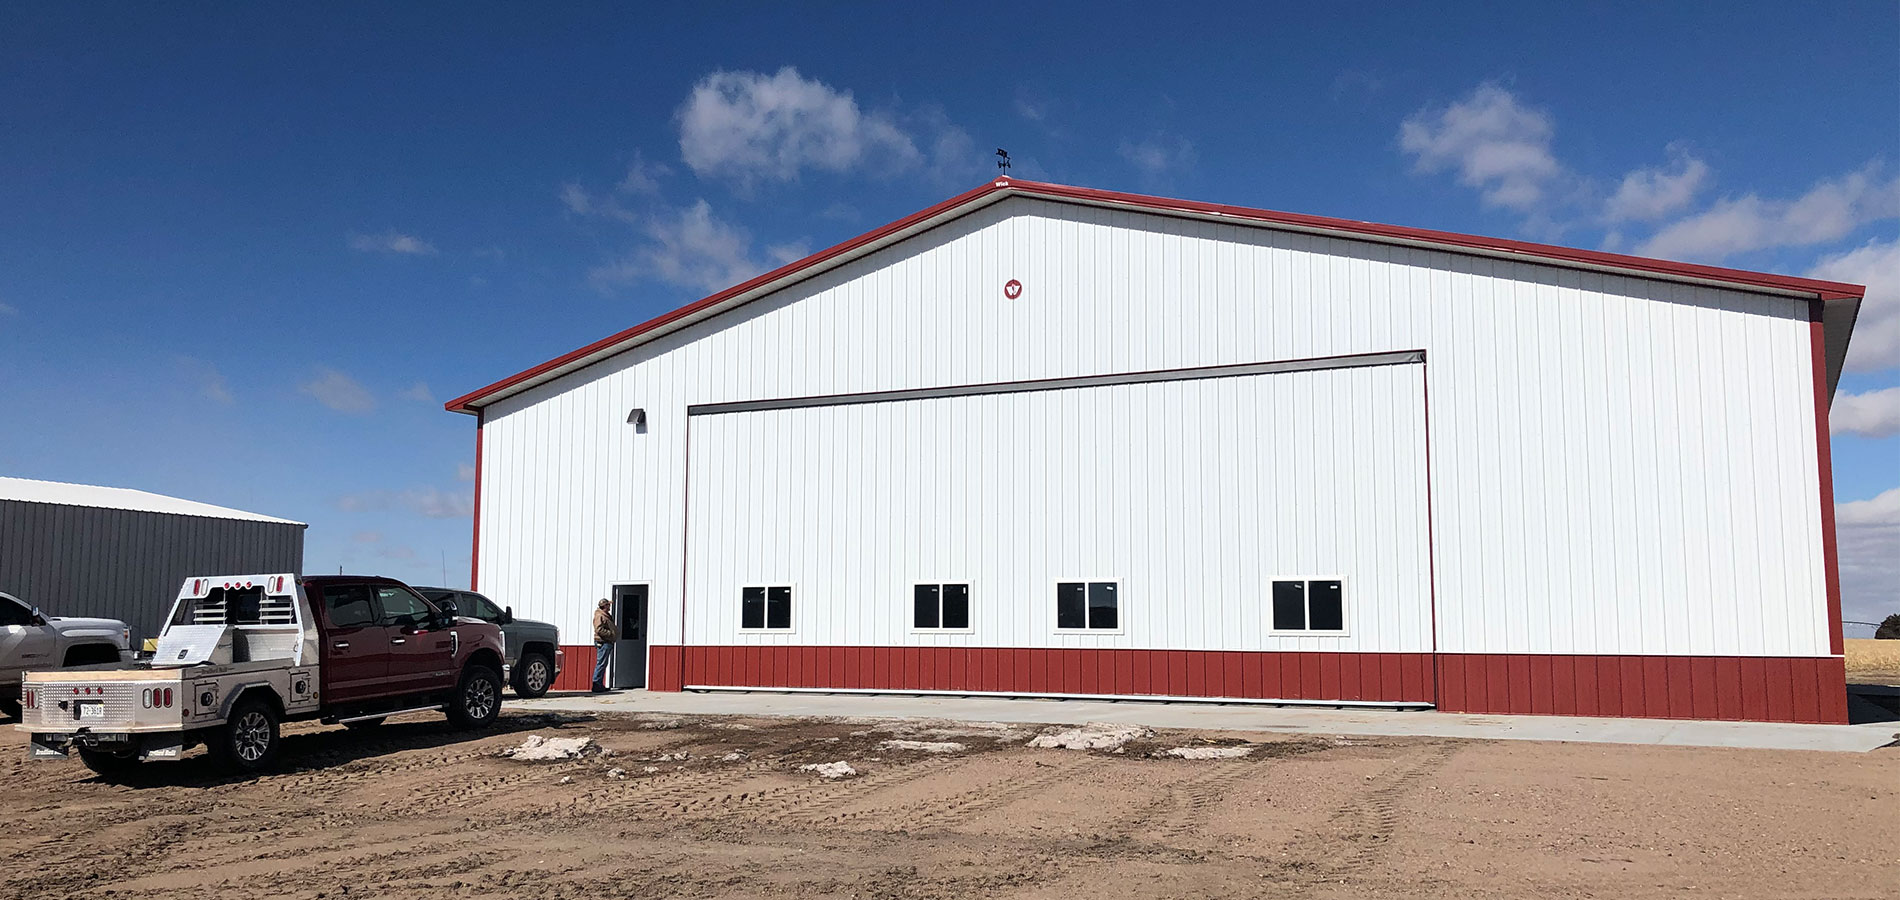 Pole Barn Building Design, Construction and buildout